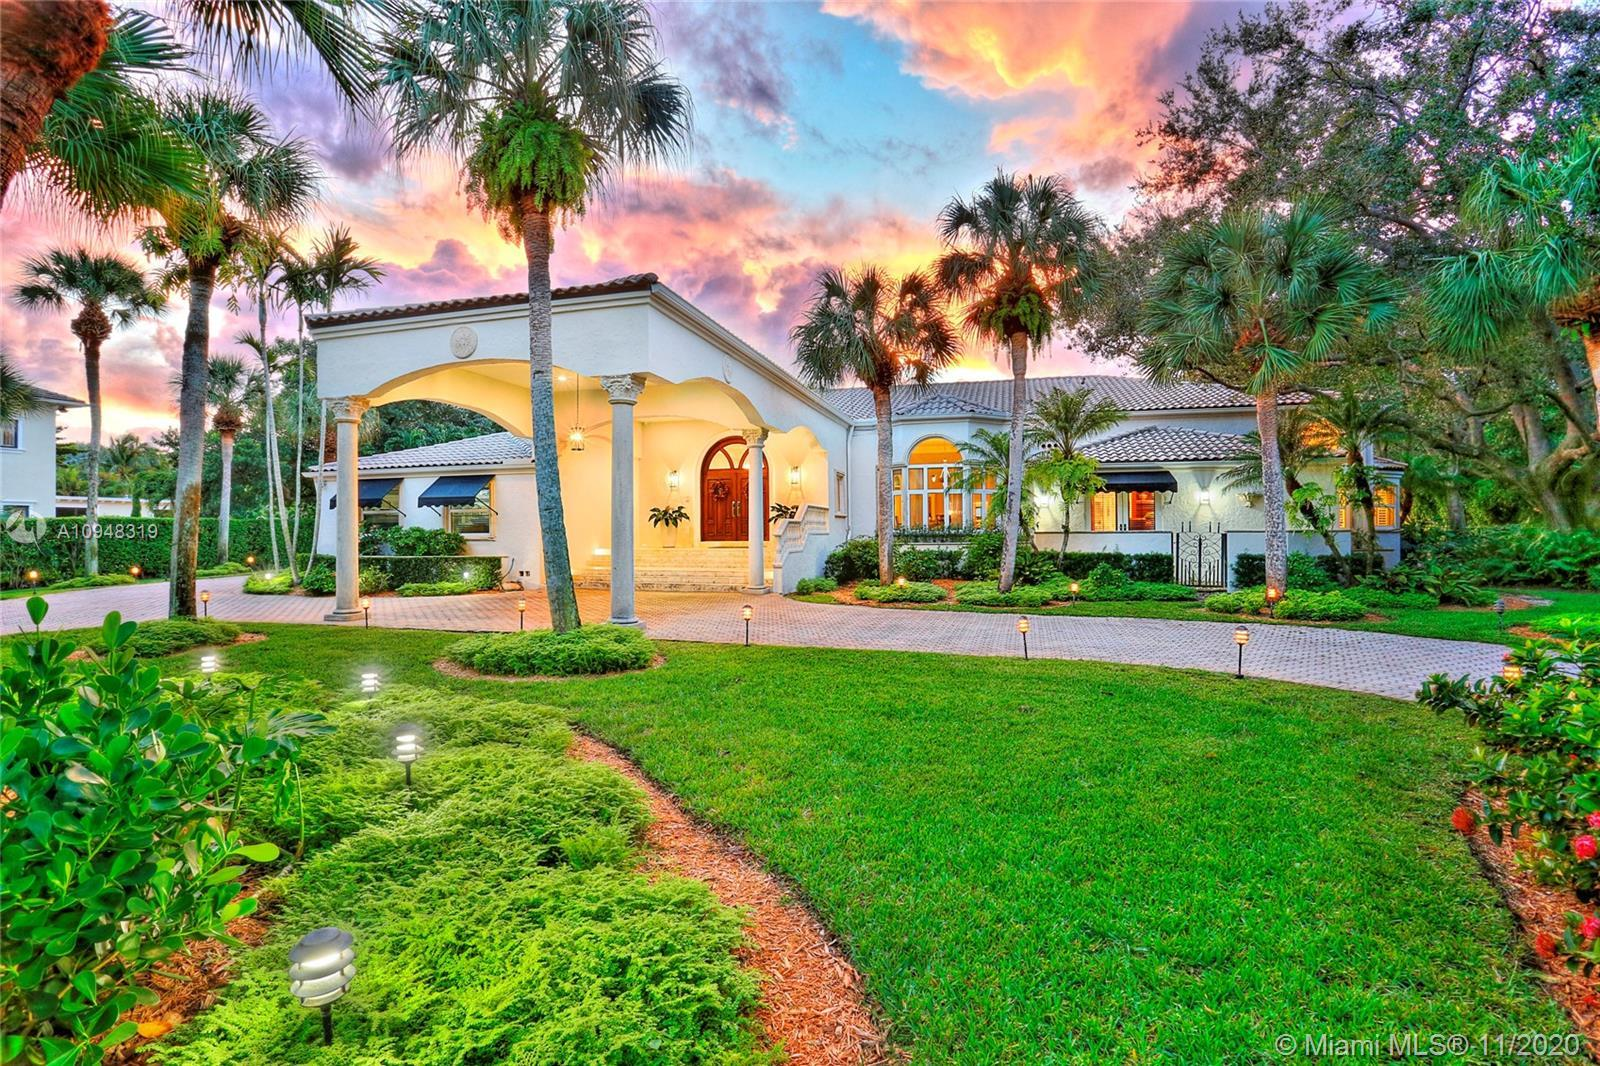 Situated on a prestigious street in Pinecrest, find this custom-built home that sits on a 61,000 sf